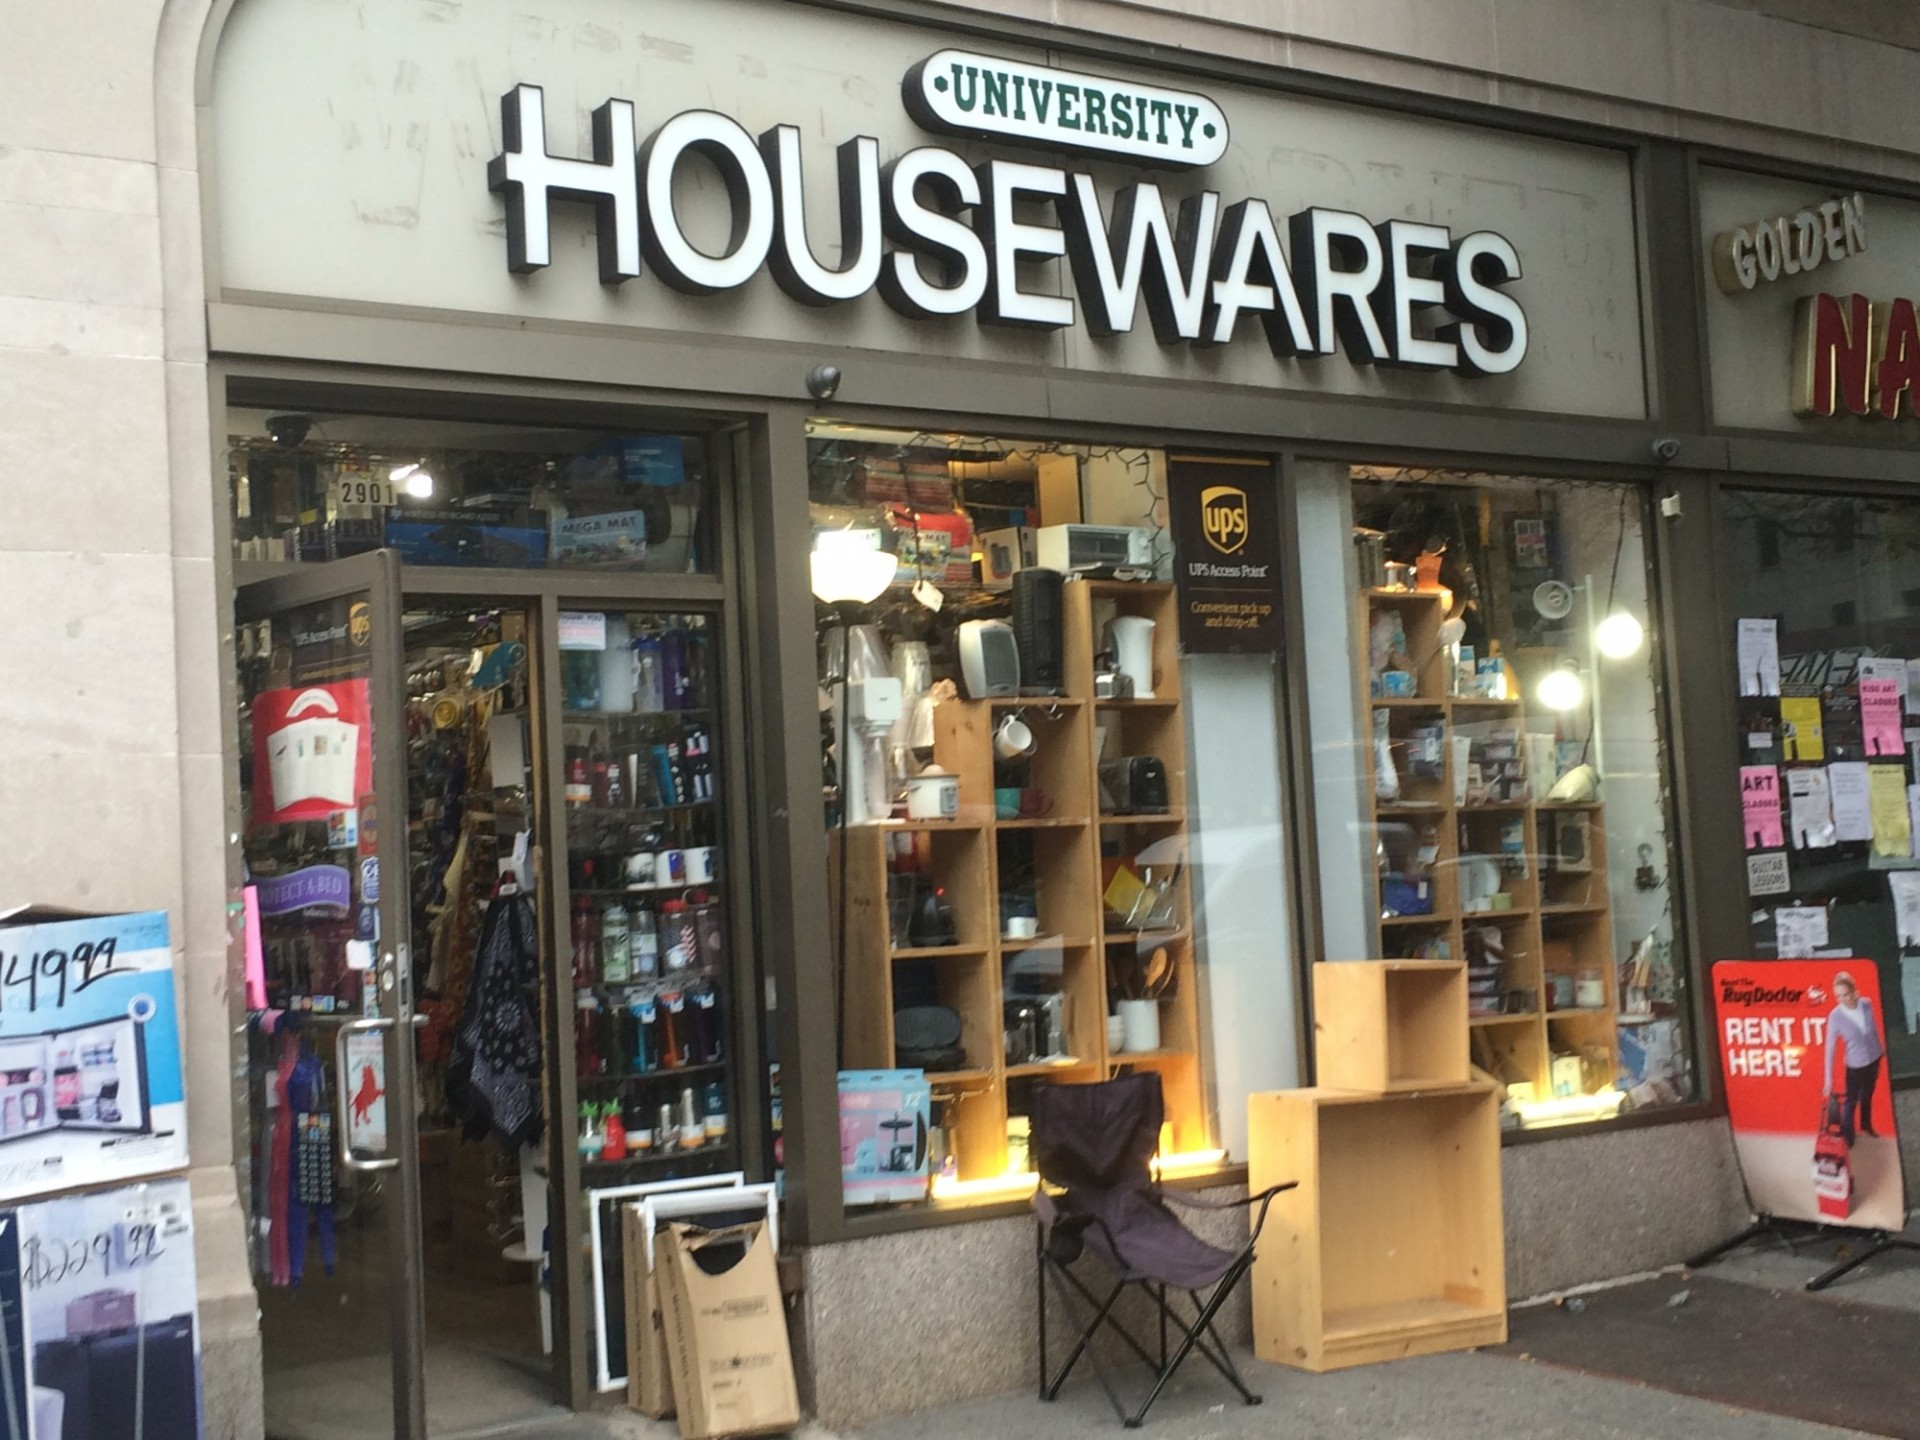 University Housewares, and its sister store University Hardware, are consolidating to a new, larger location across Broadway beginning in July.